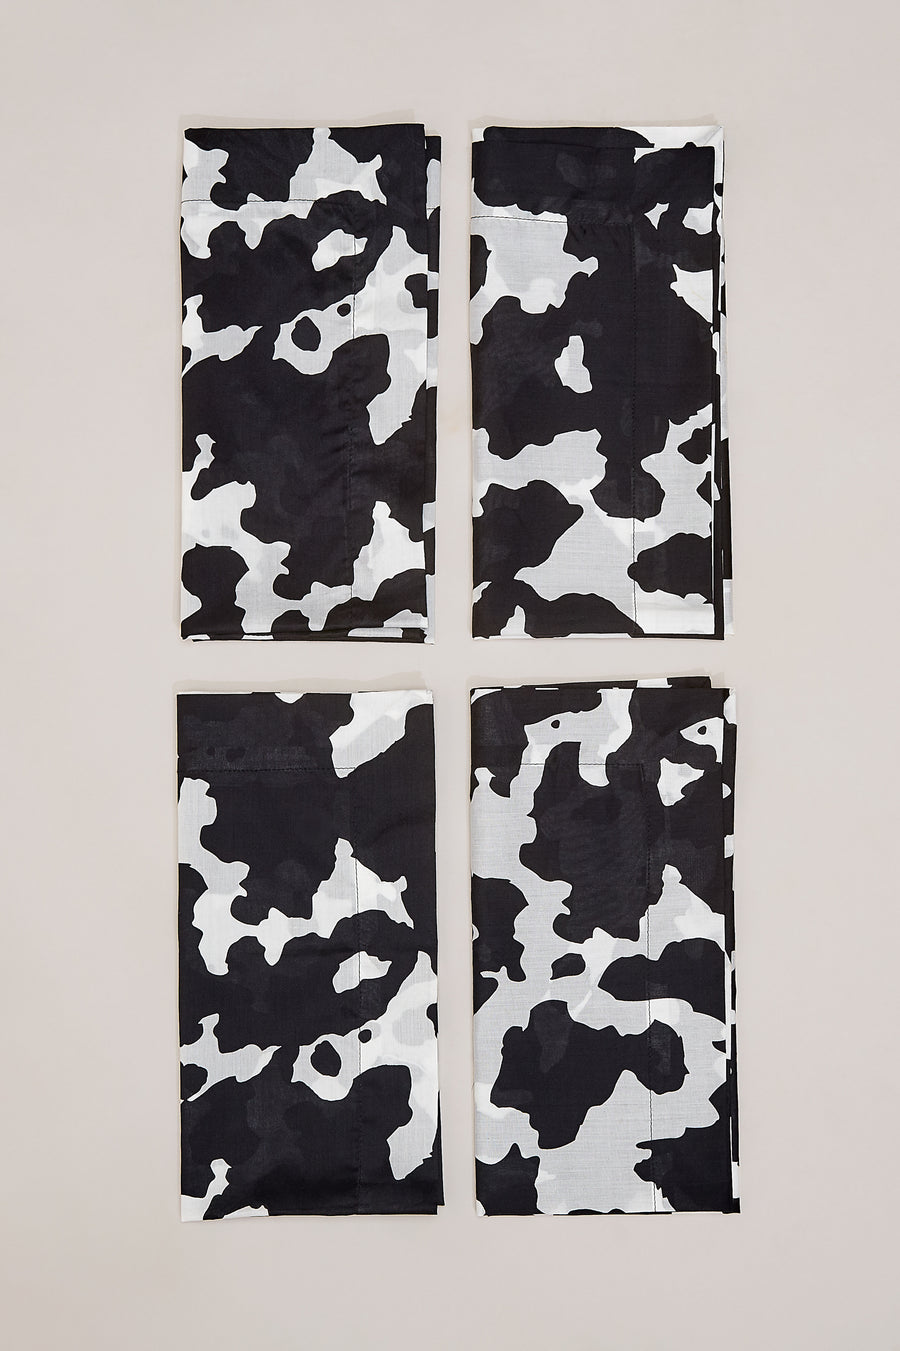 CaSa Napkin Set (4) in Black and White Cow